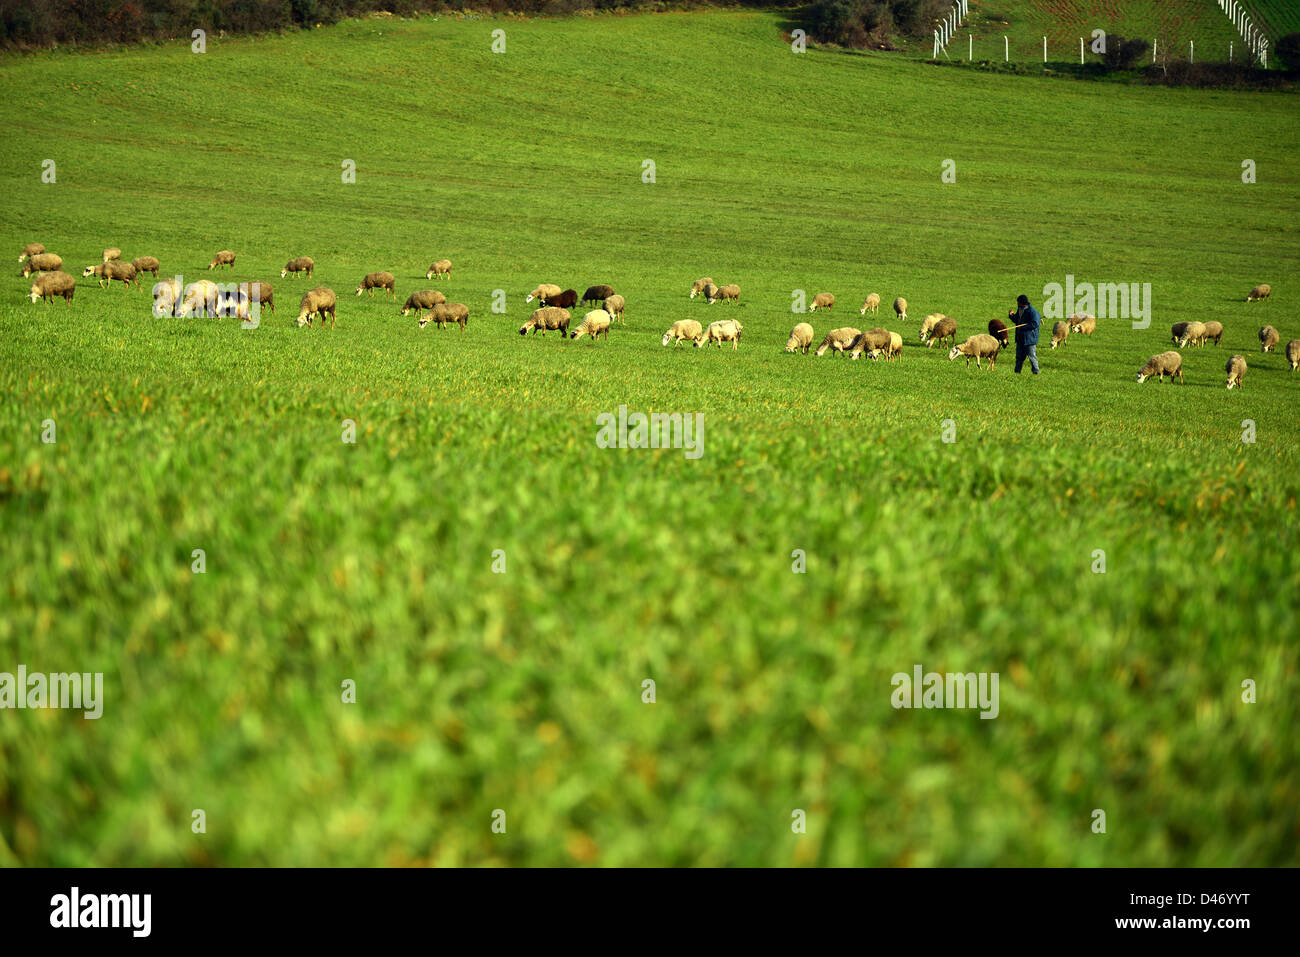 green meadow and Sheep Grazing - Stock Image